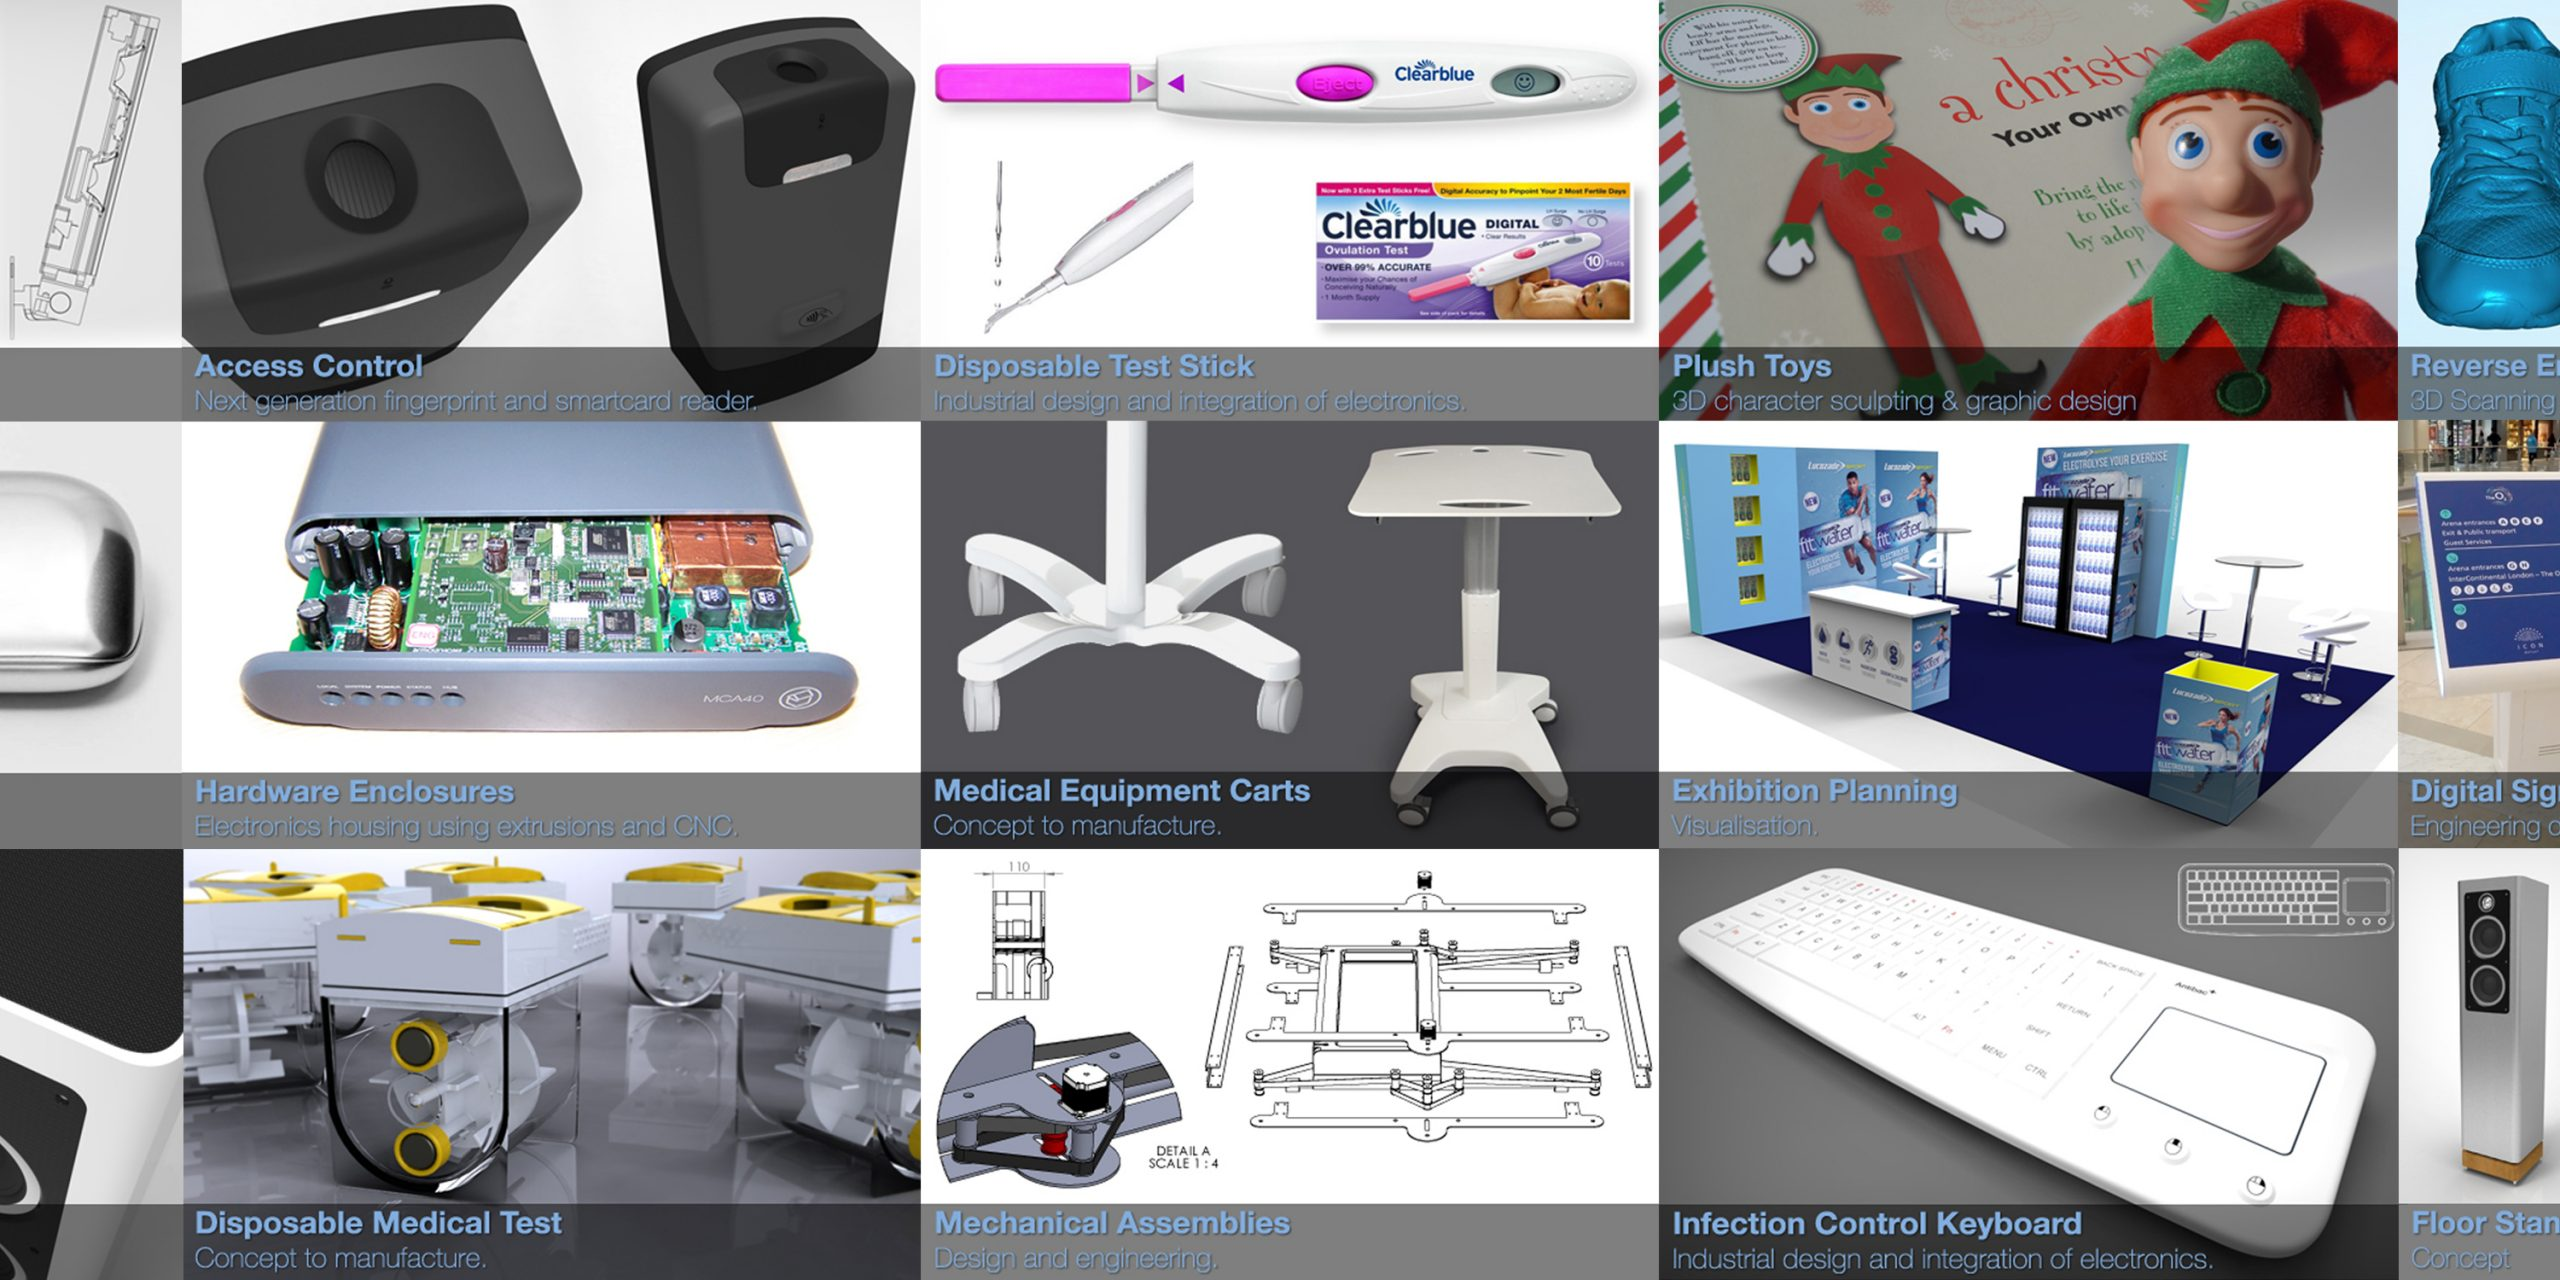 Past design projects, injection moulding, 3D CAD,  Hardwear enclosures, mouldings, mechanism design